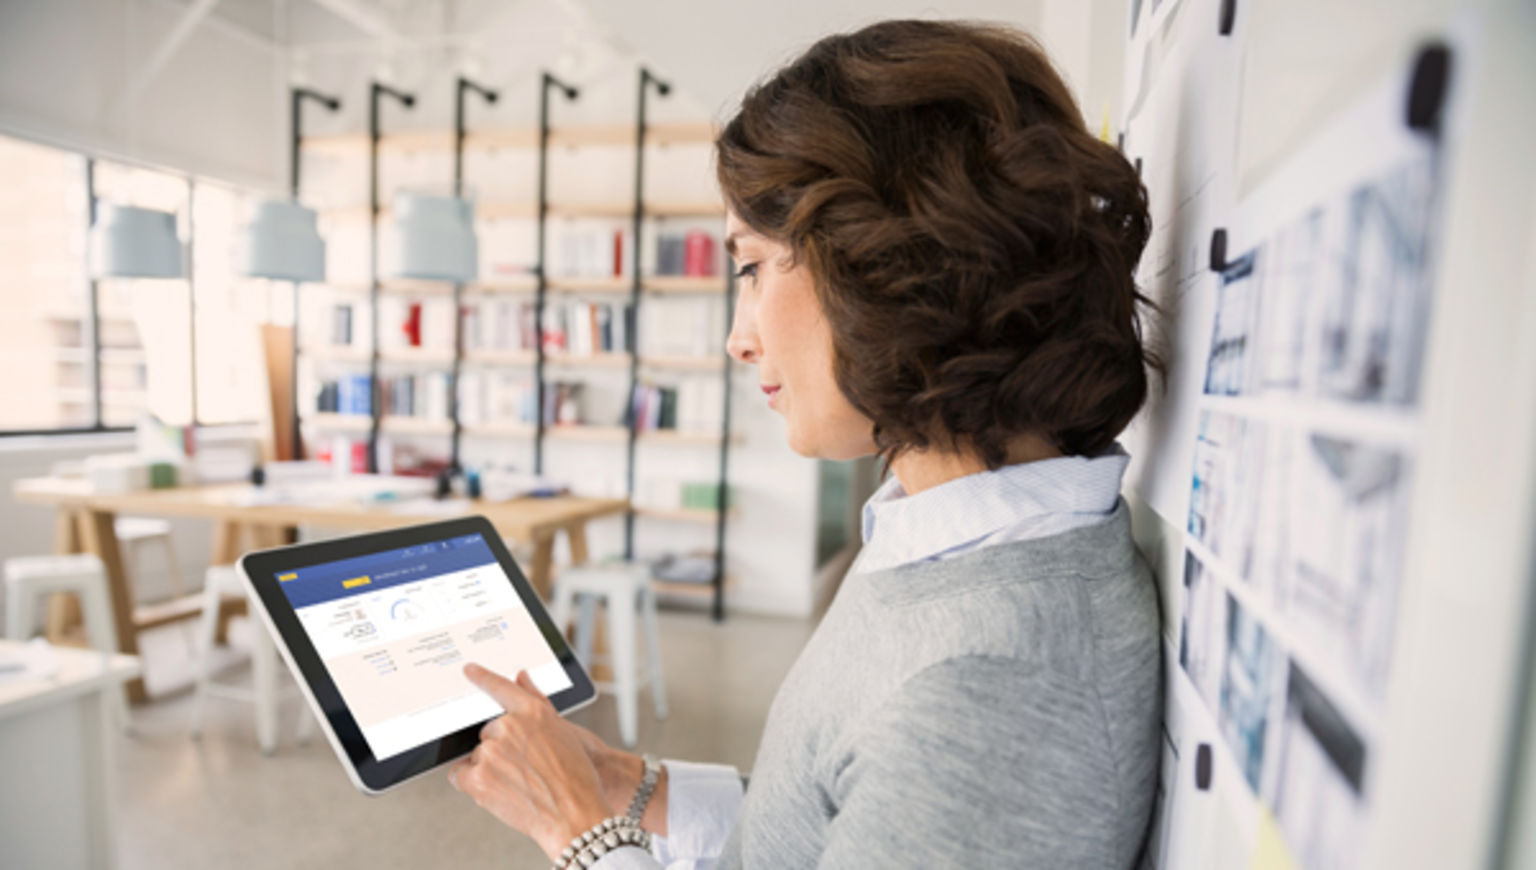 A woman leans against a wall in a naturally lit room to access DocuSign online in Australia.